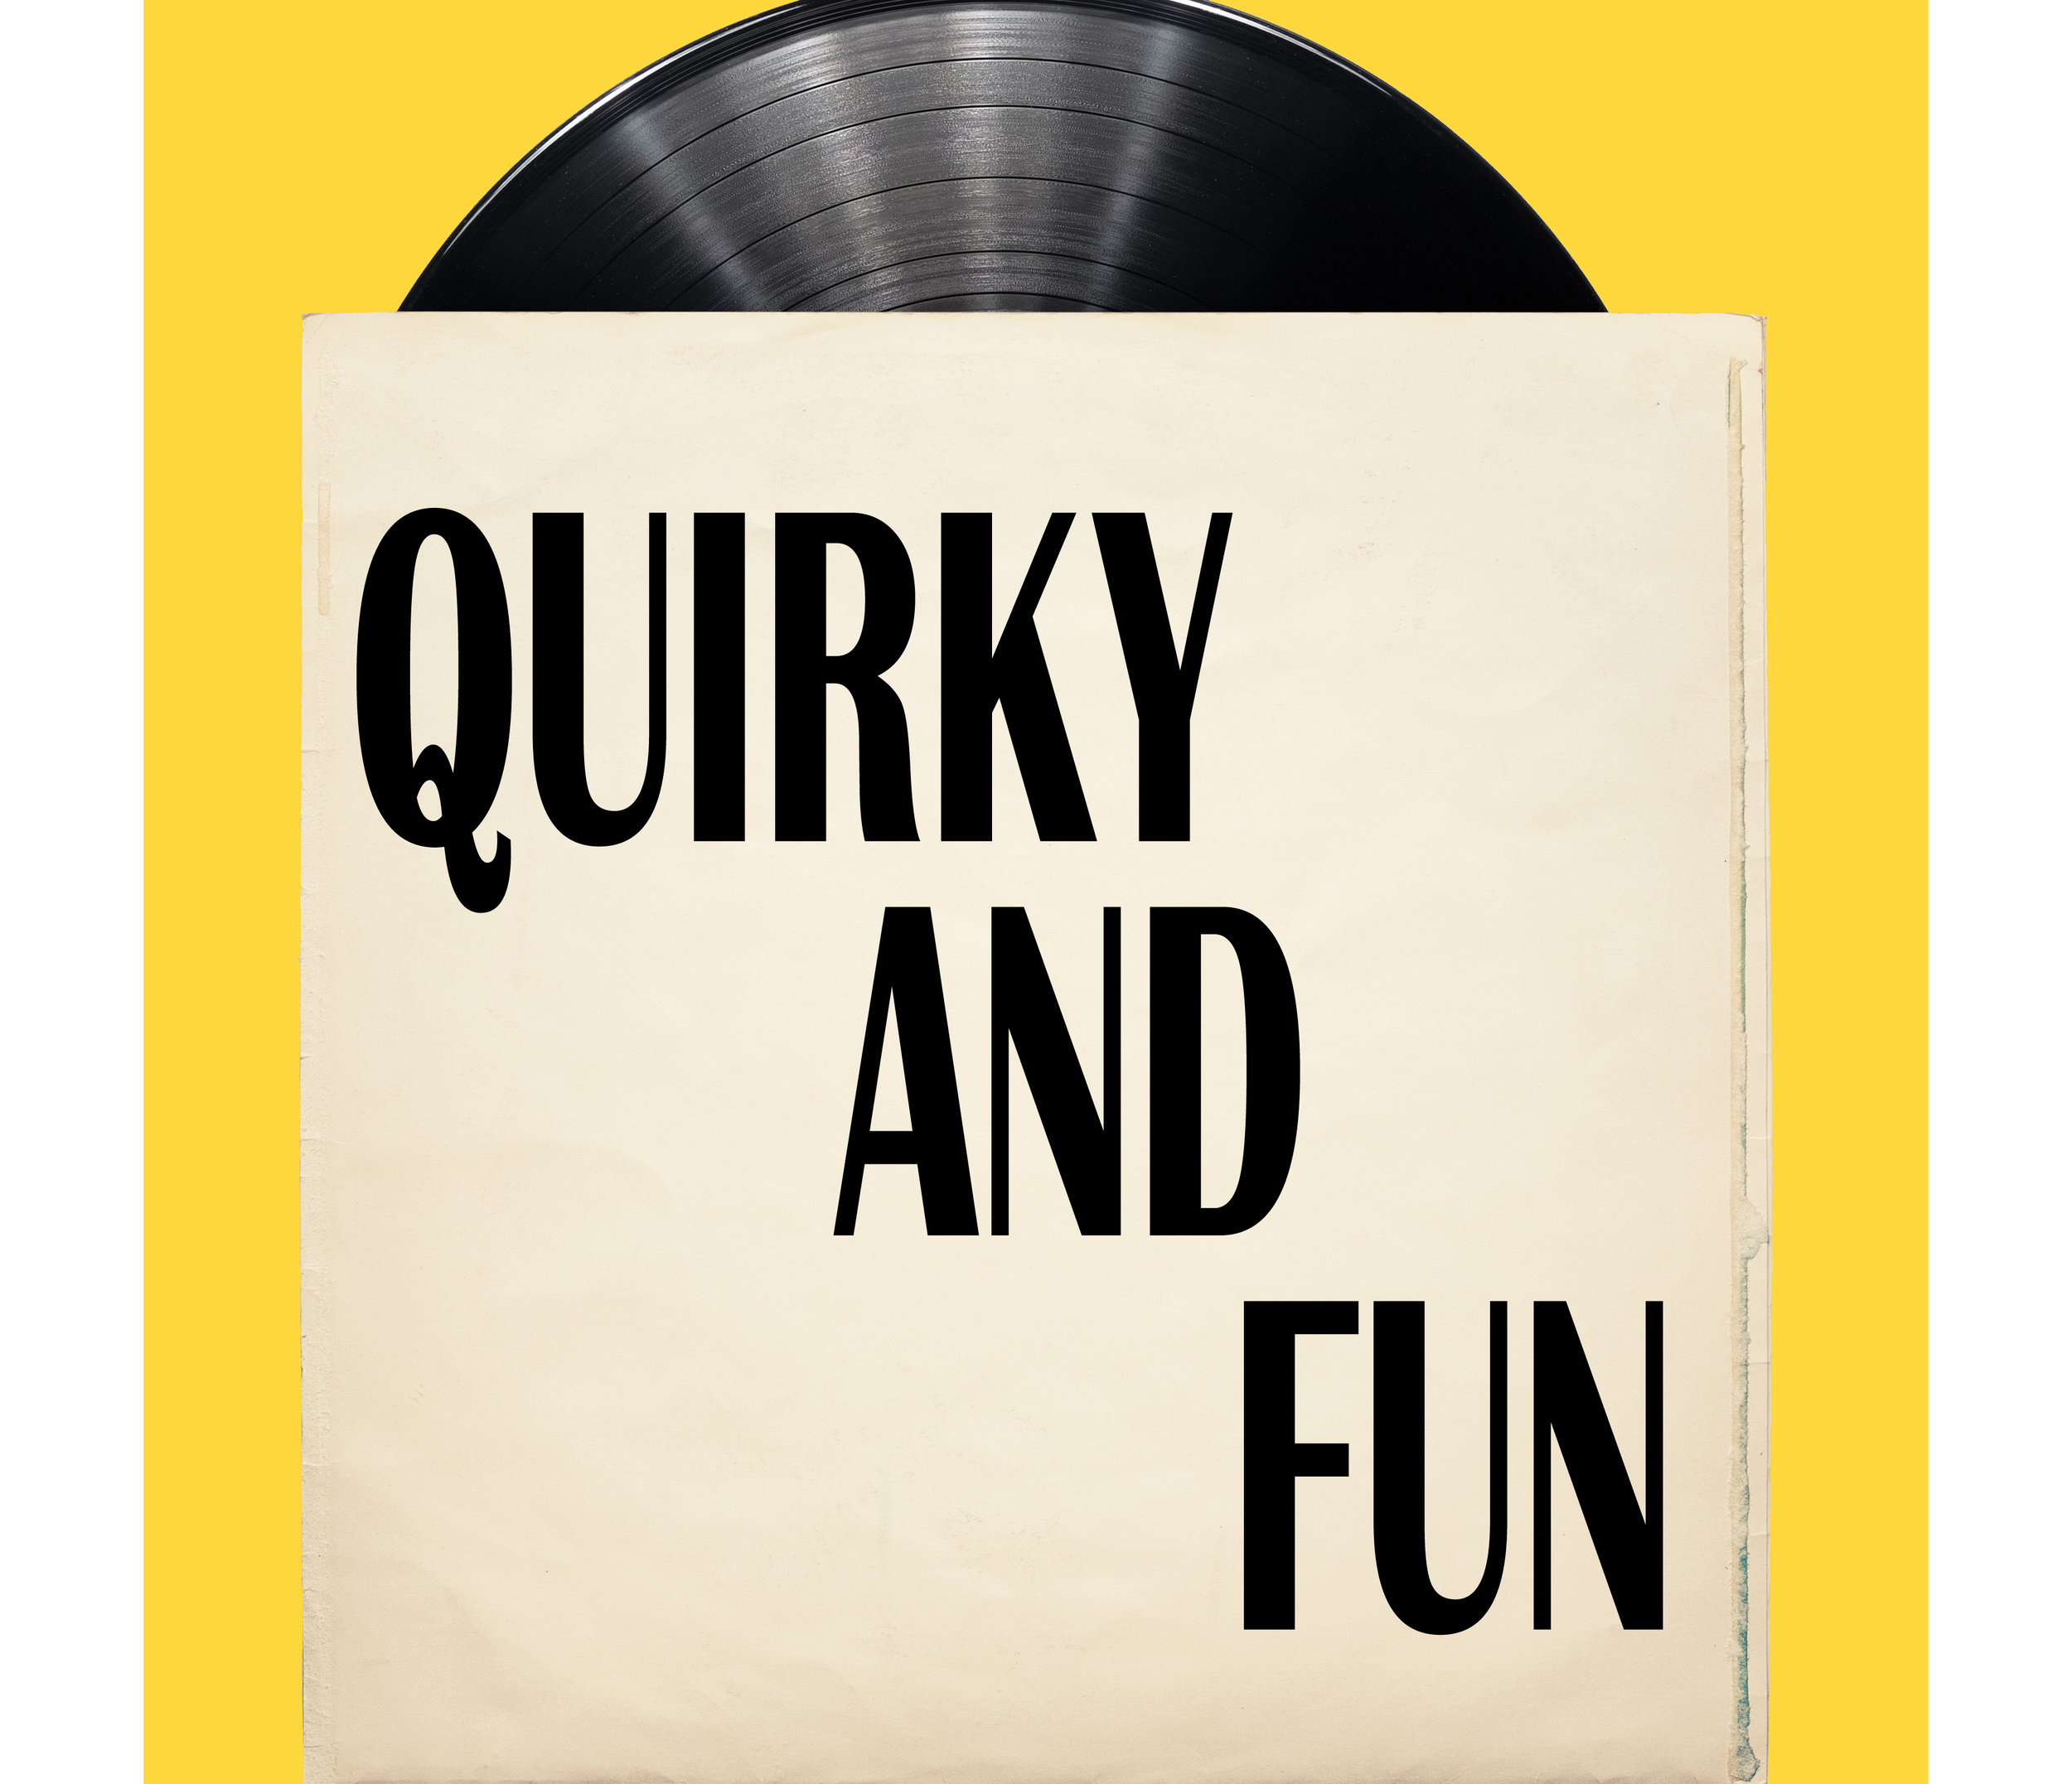 Quirky And Fun